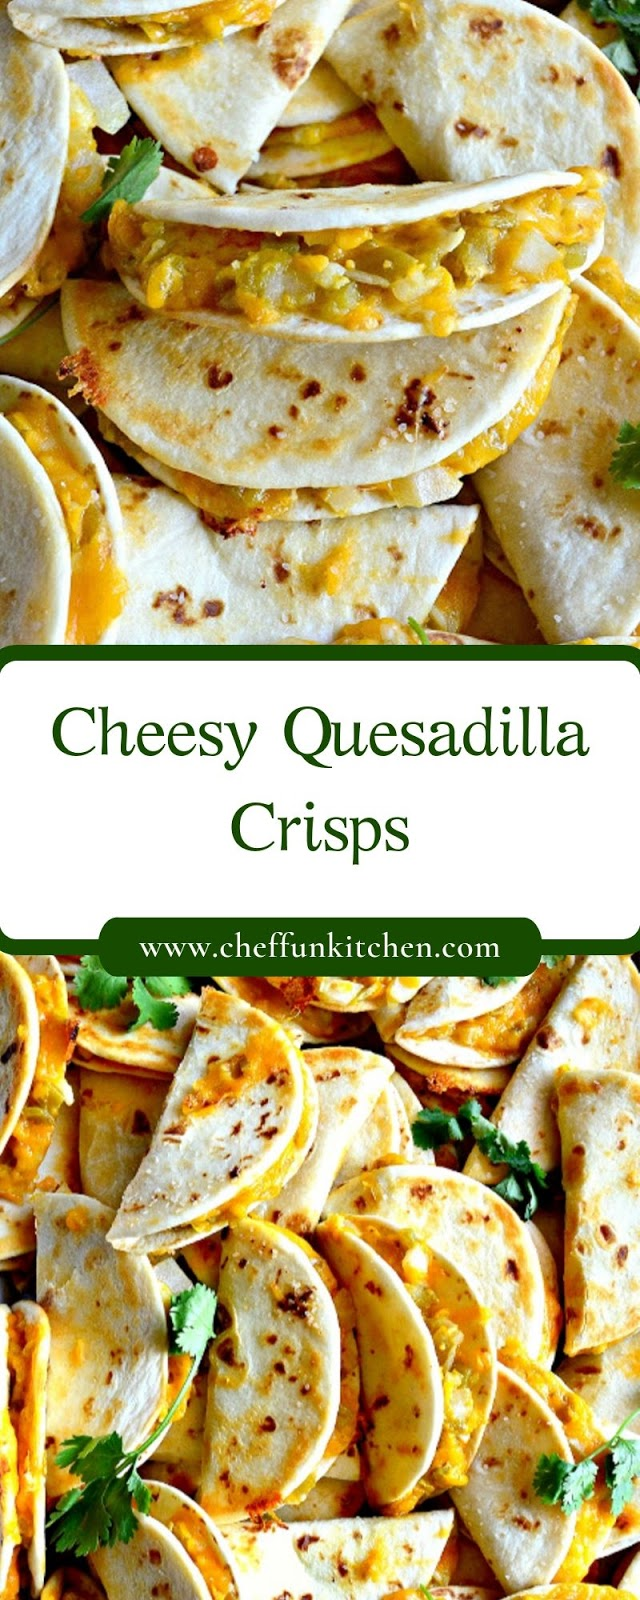 Cheesy Quesadilla Crisps